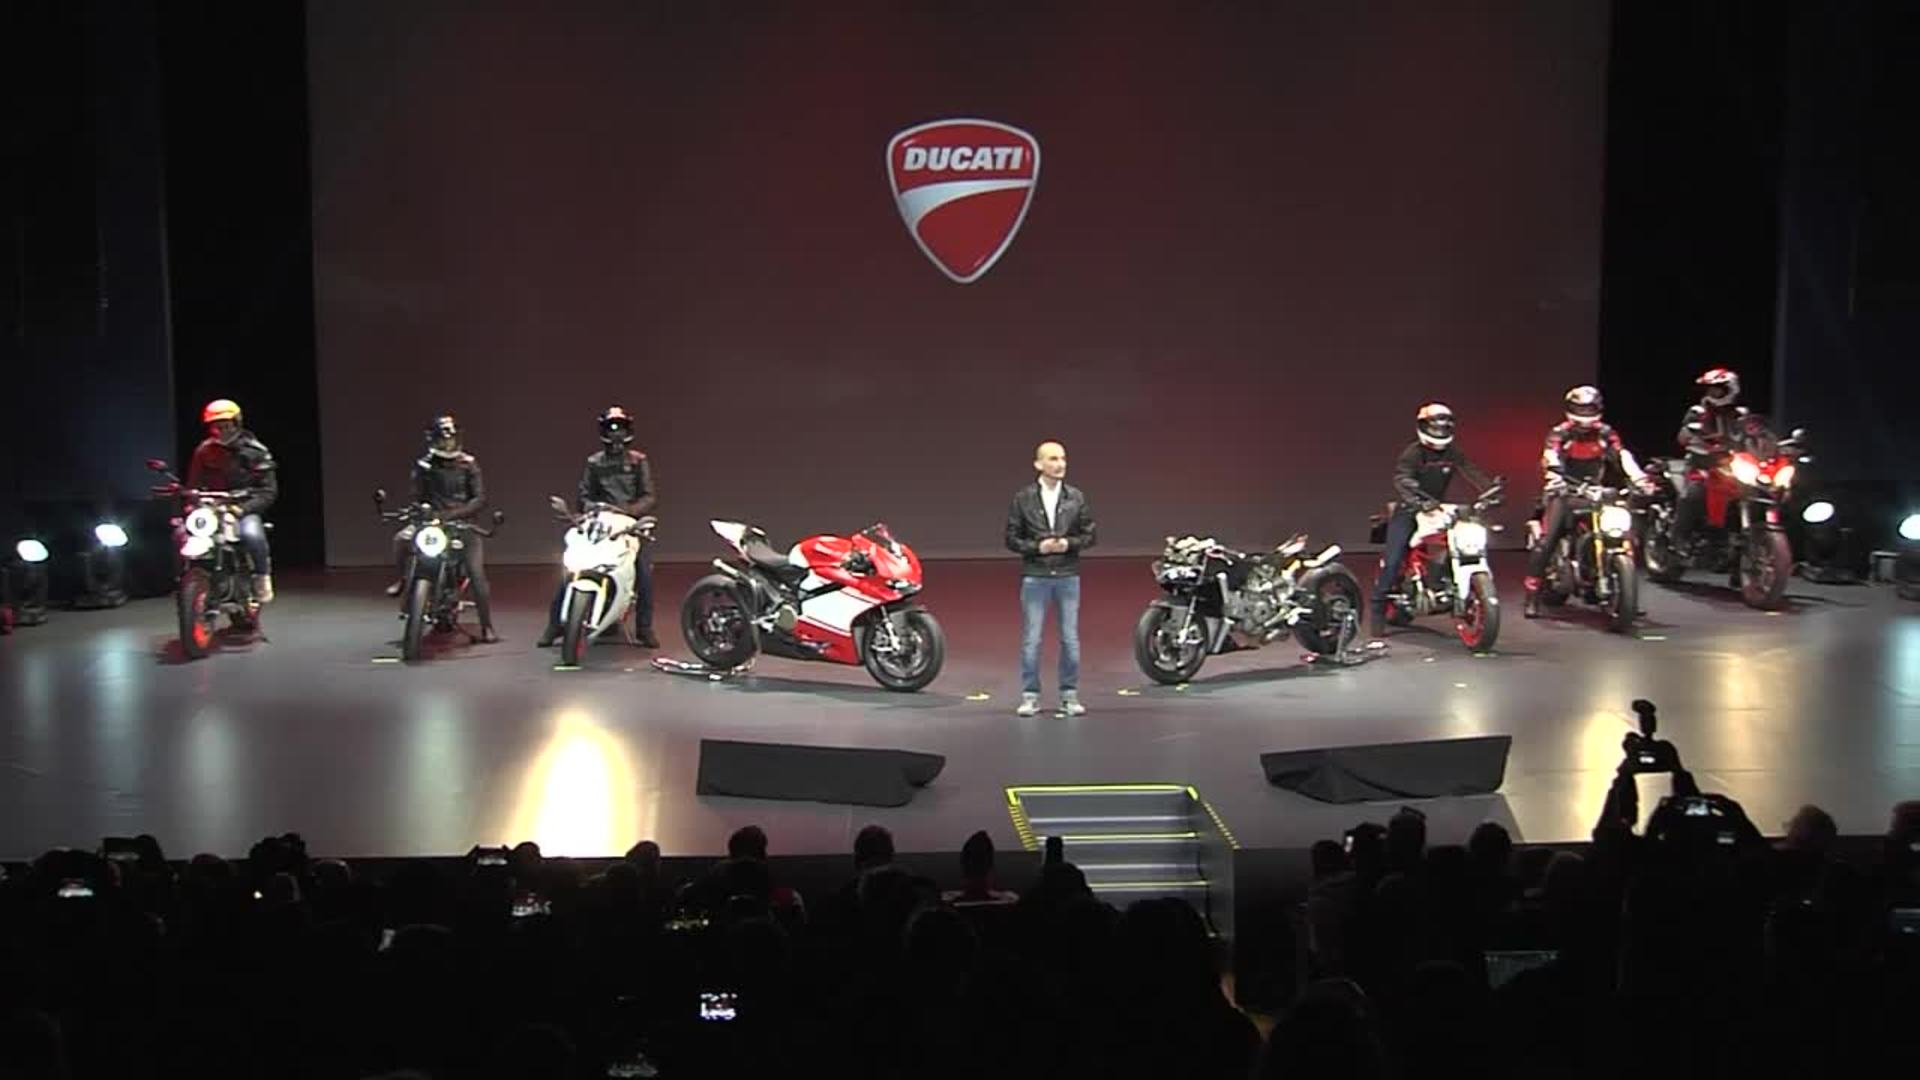 More than red – Ducati press show with six new models